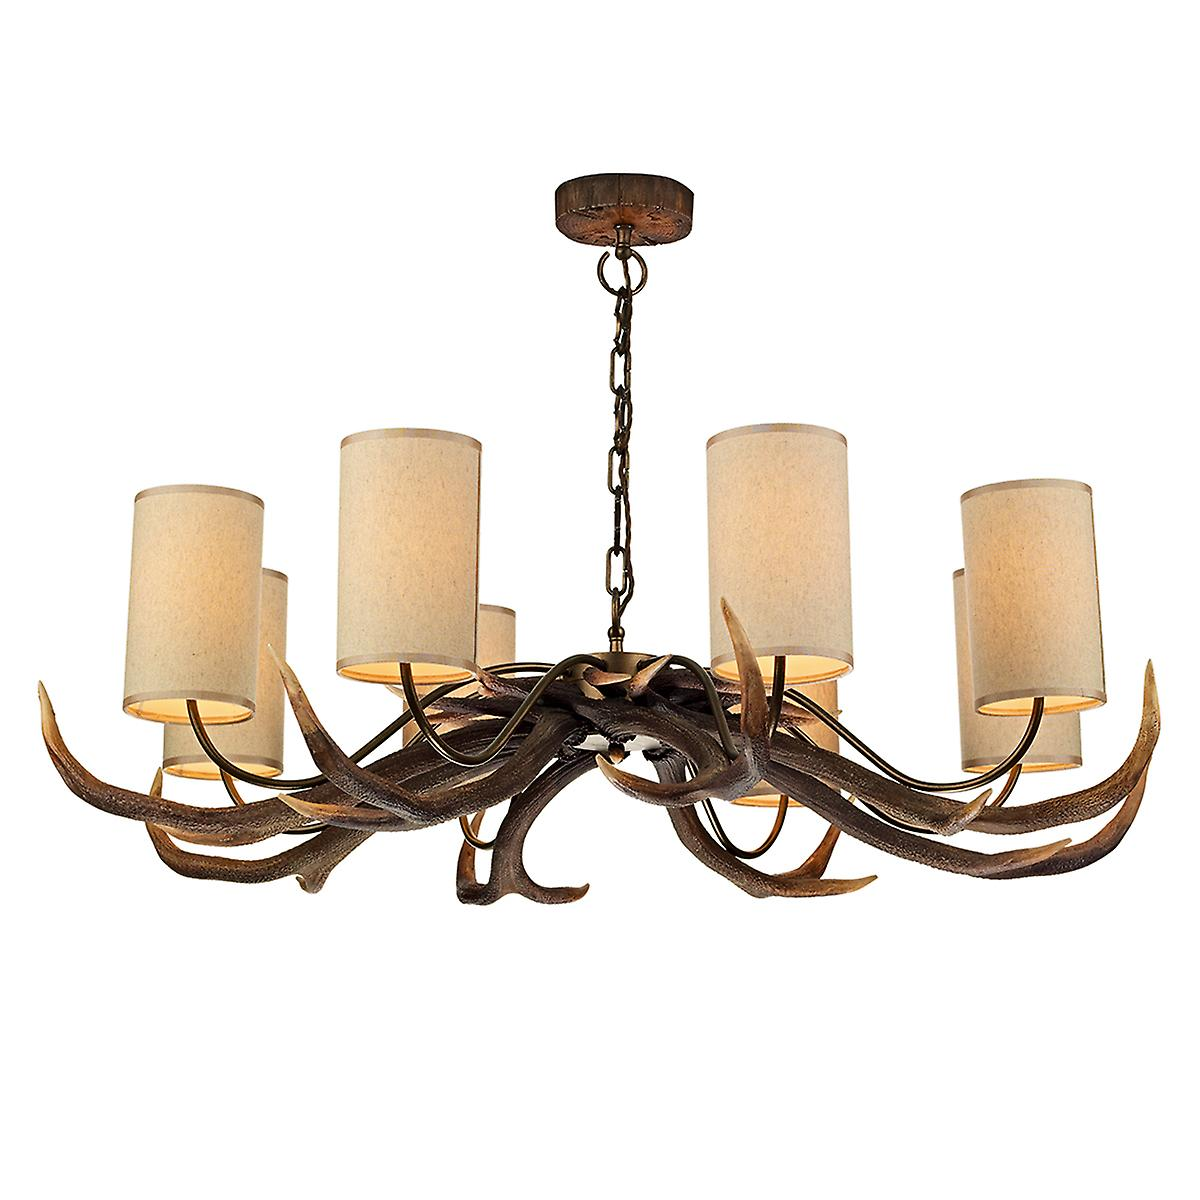 David Hunt ANT0829S Antler 8 Light Pendant In A Natural Rustic Finish - Shades Included